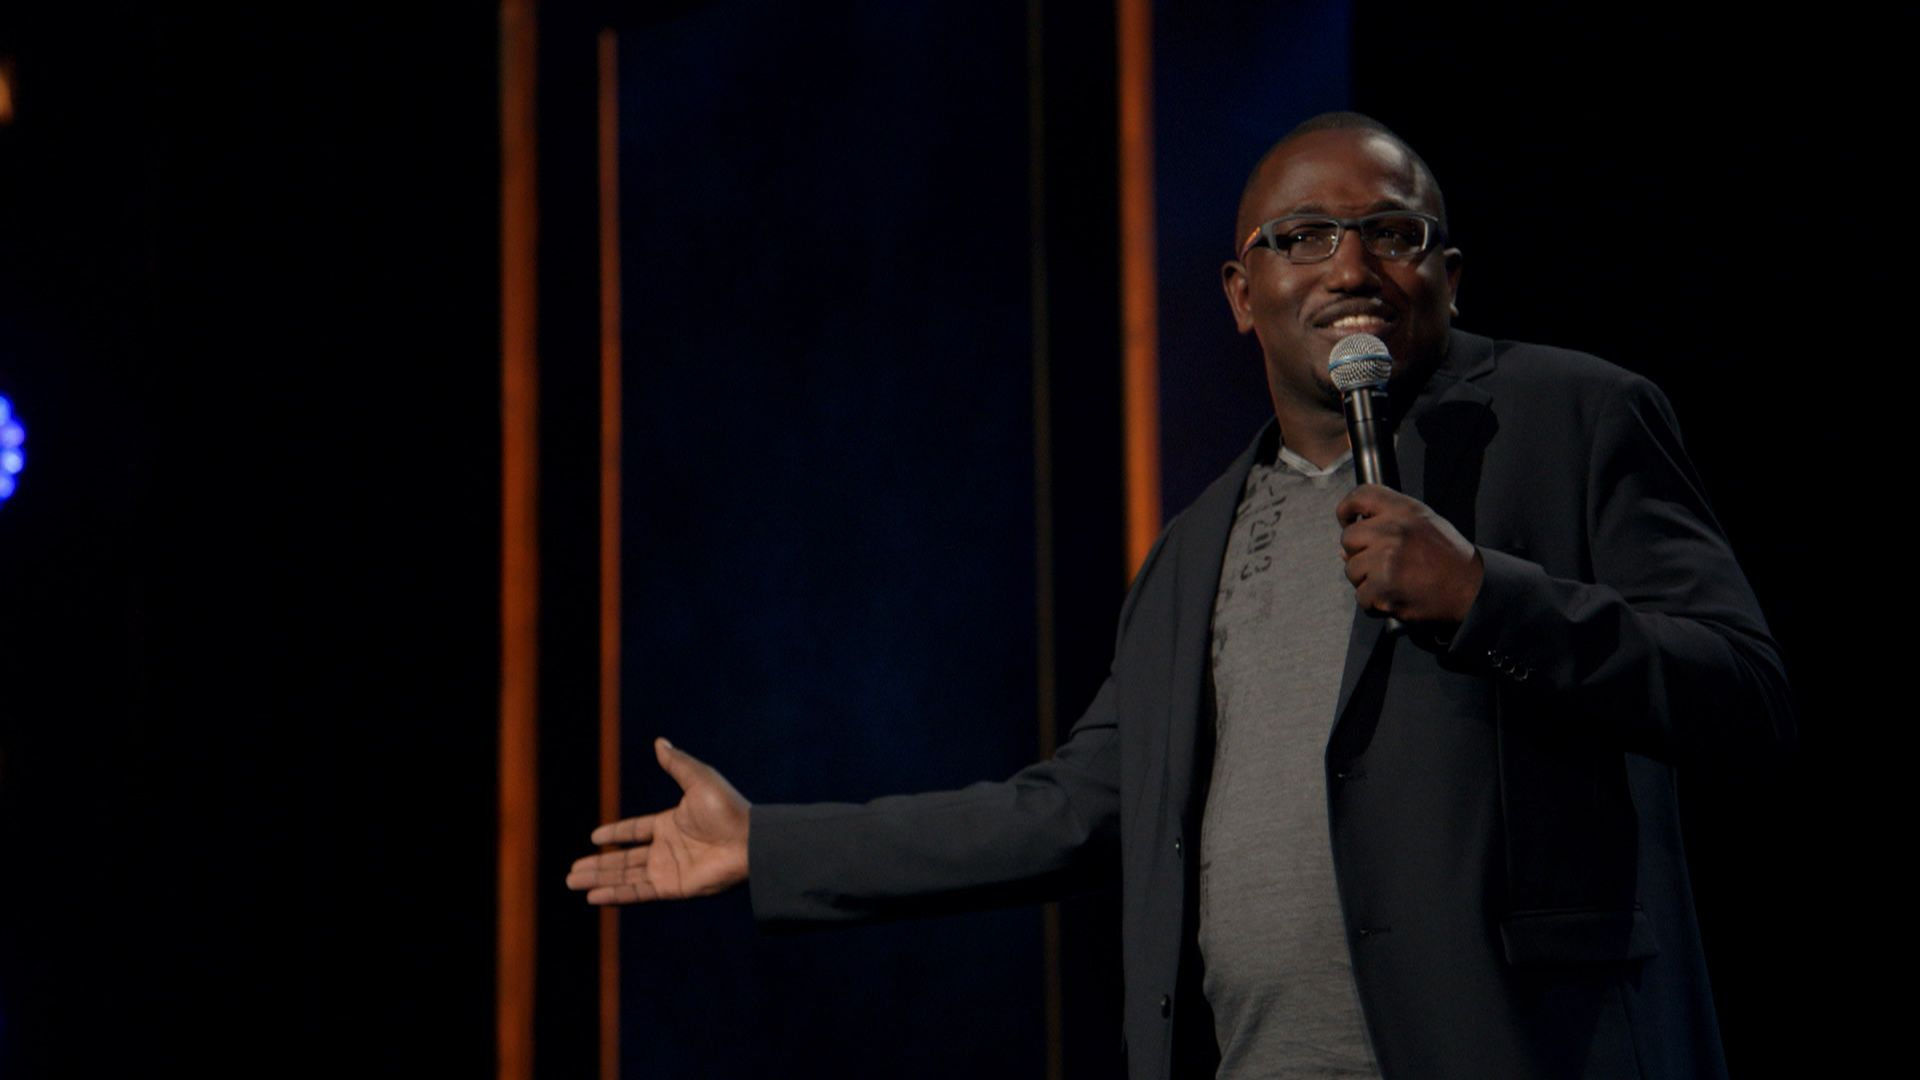 stand up video clips comedy central stand up hannibal buress live from chicagouncensored hannibal buress comedy is a weird job 2 13 hannibal buress gets really annoyed when people ask him to do